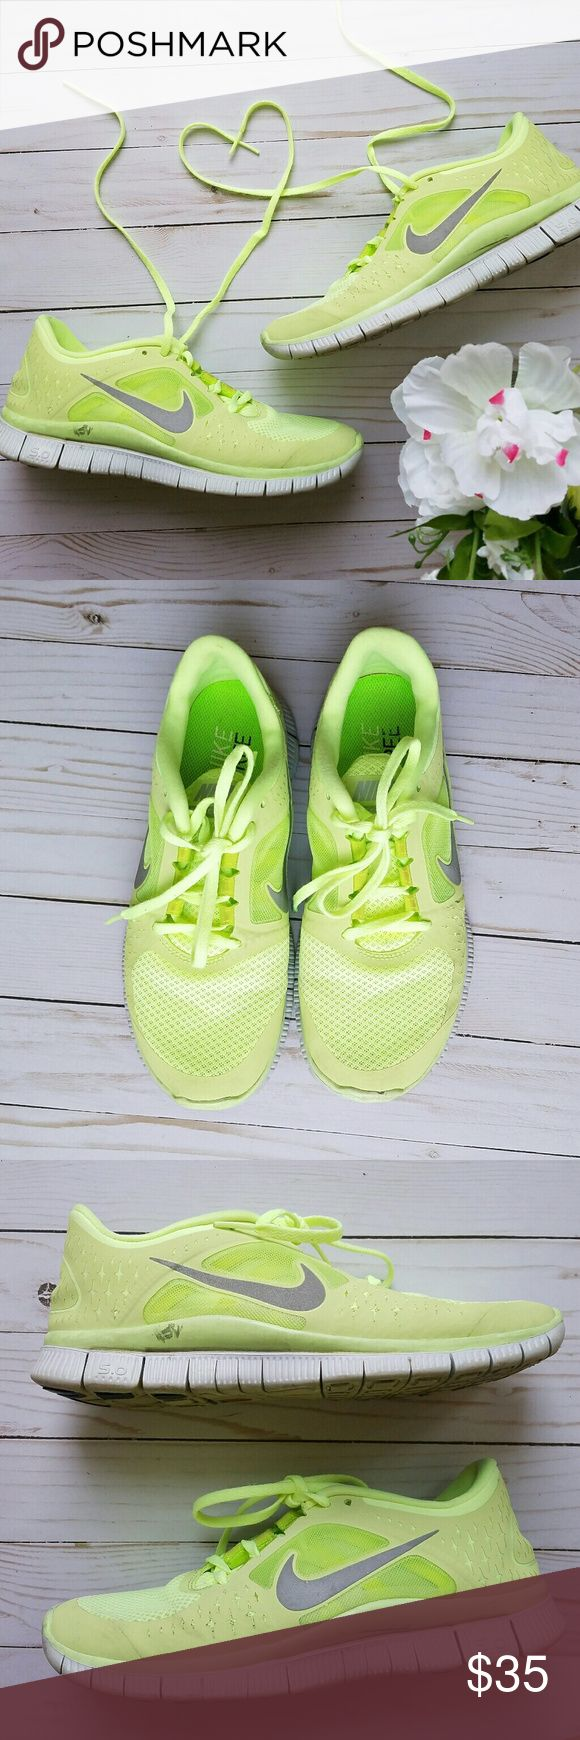 Nike Free Run 3 Nike Brand. Free Run 3. Women's size 9. Florescent yellow green with gray Nike swoosh. Worn for outdoor running several times. Scuffs, discoloration, and general wear are present but all is shown in the photos. They have been cleaned and are odor free. Nike Shoes Athletic Shoes